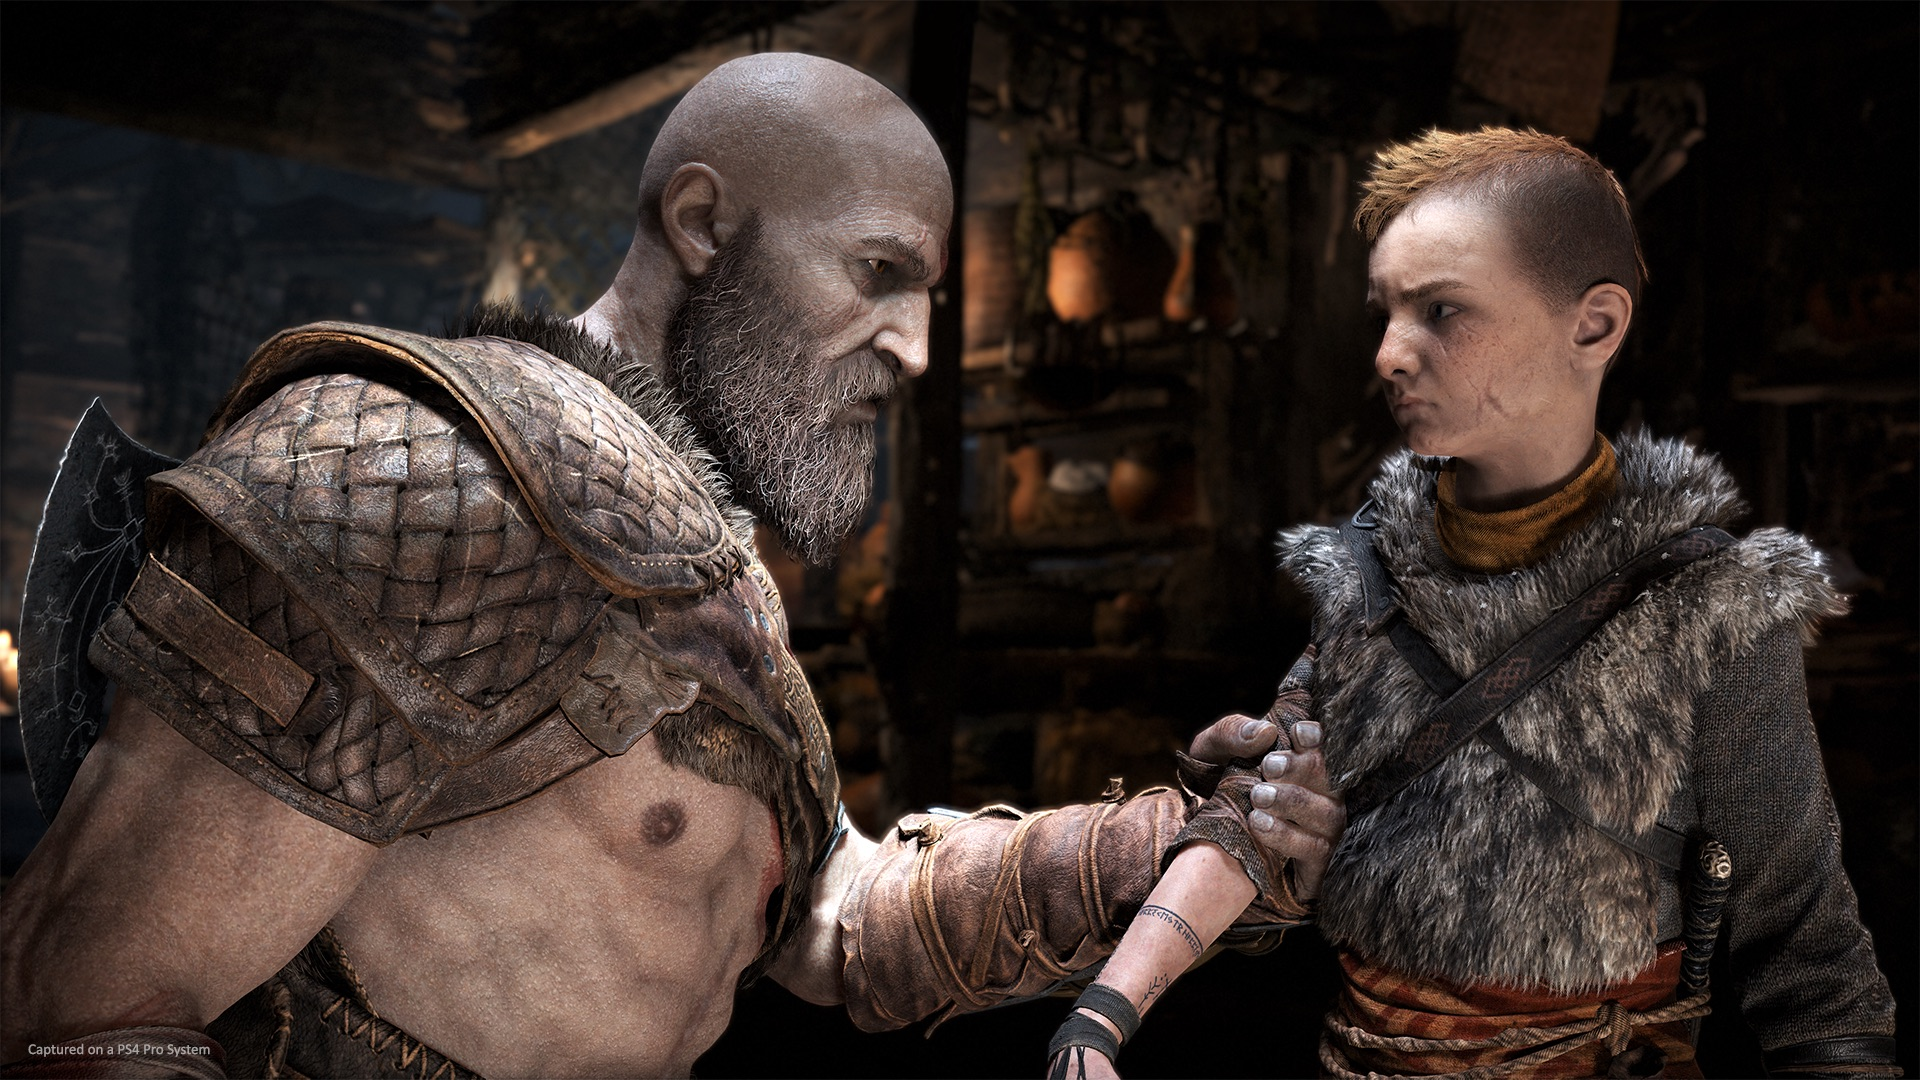 Kratos and his son Atreus in the new God of War game for the PS4